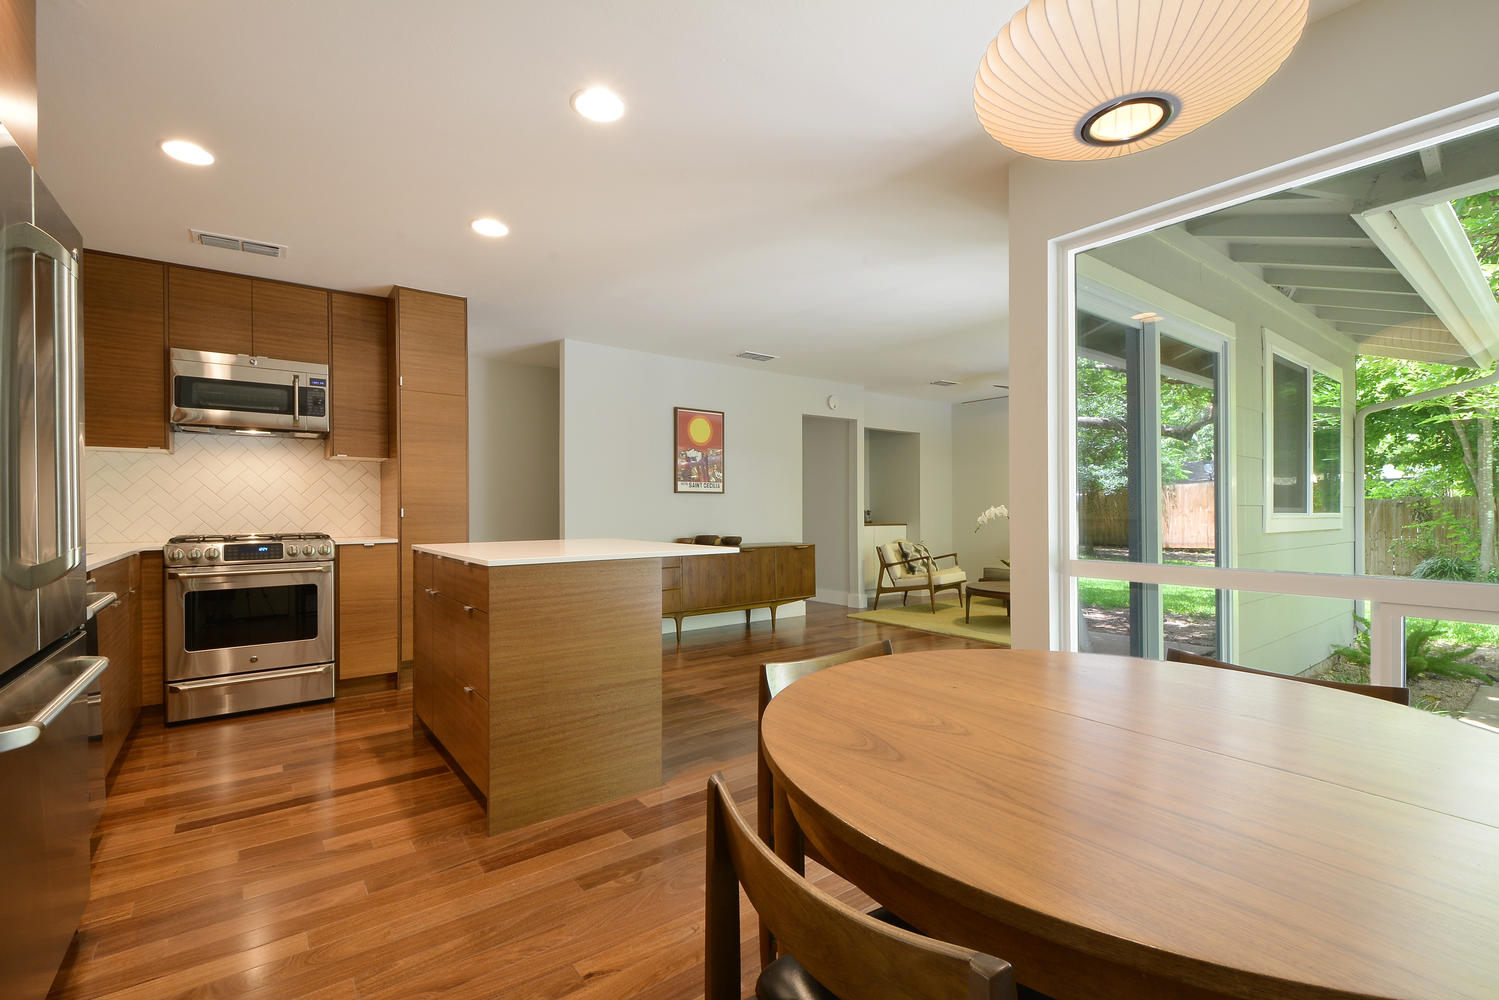 6704 Kings Point West-large-011-Kitchen and Breakfast 364-1499x1000-72dpi.jpg